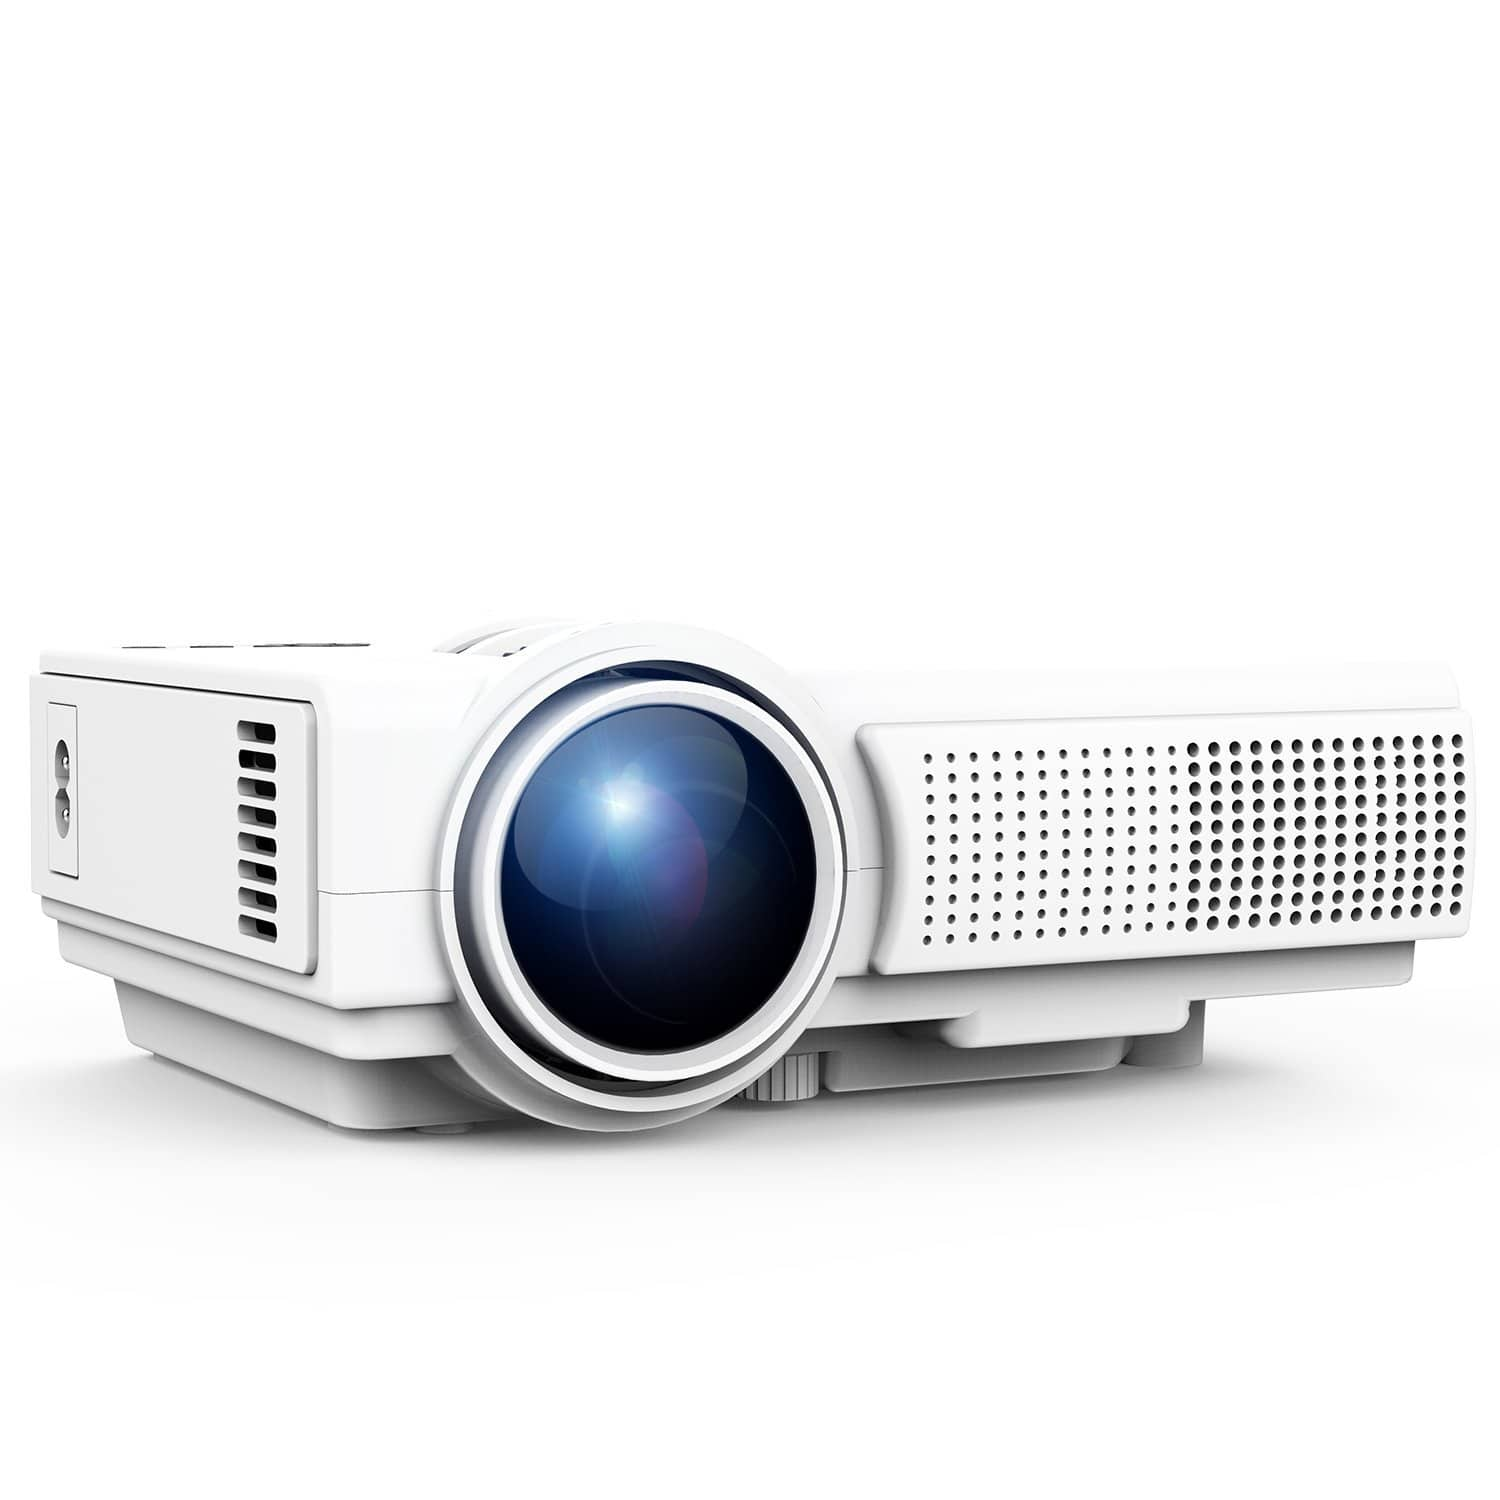 TENKER Q5 Mini Projector 1500 Lumens $49.99 & FREE Shipping  Amazon